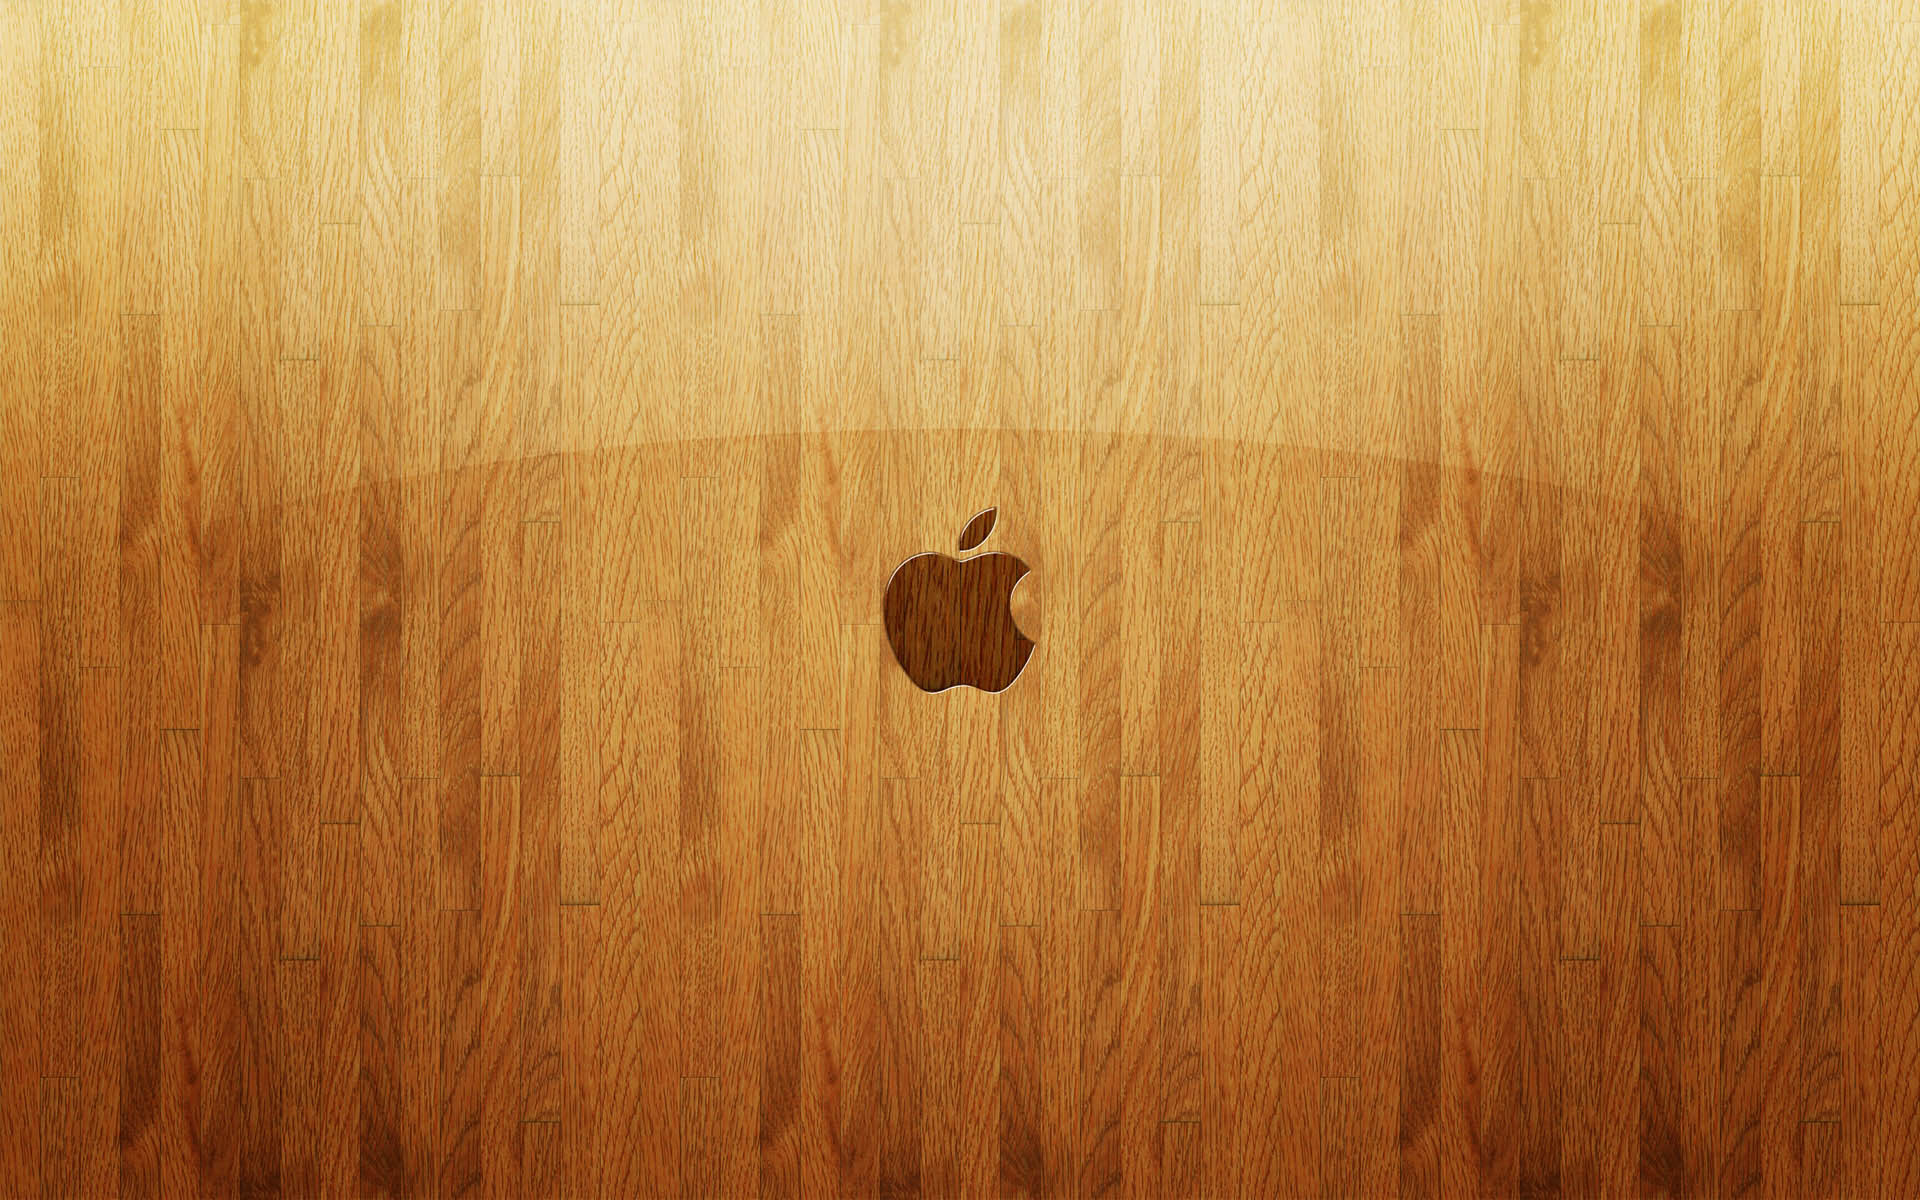 Apple Wooden Glass6016915113 - Apple Wooden Glass - Wooden, iPhones, Glass, Apple